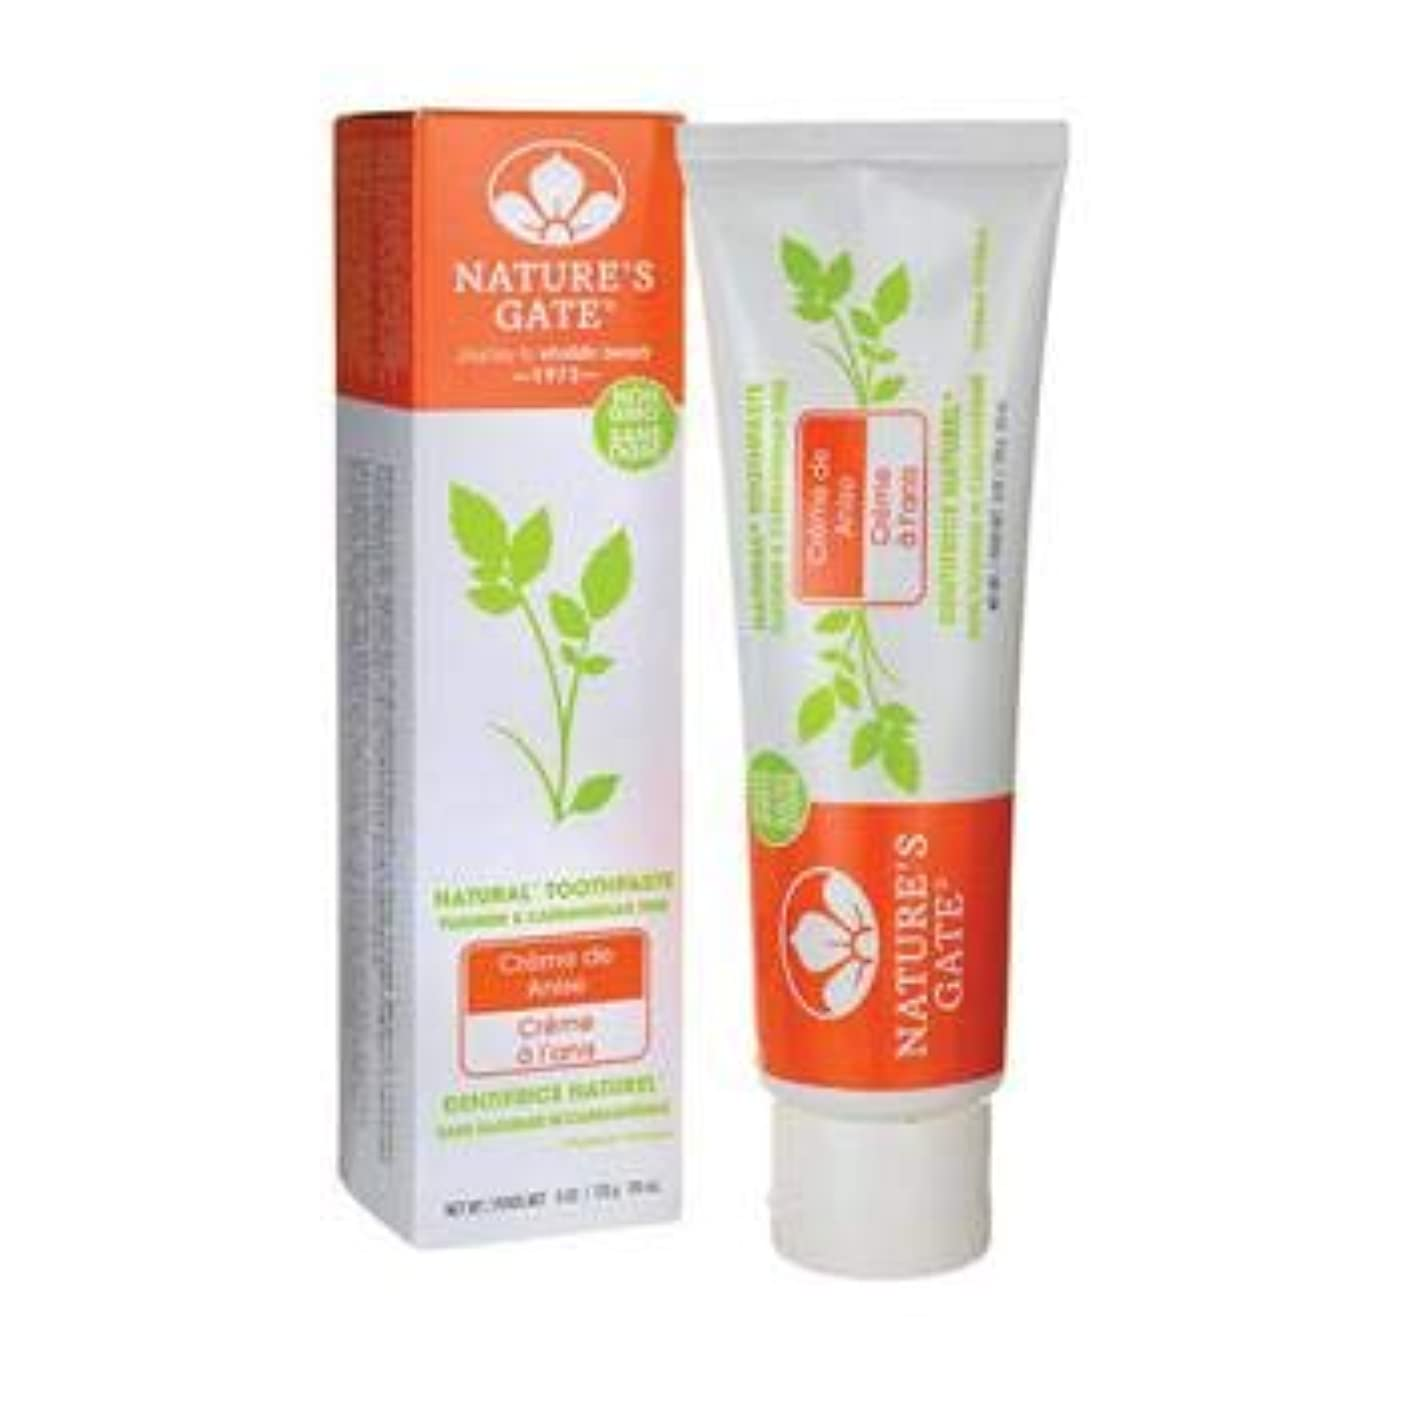 既にずるい法王海外直送品Toothpaste Creme De, Anise 6 Oz by Nature's Gate